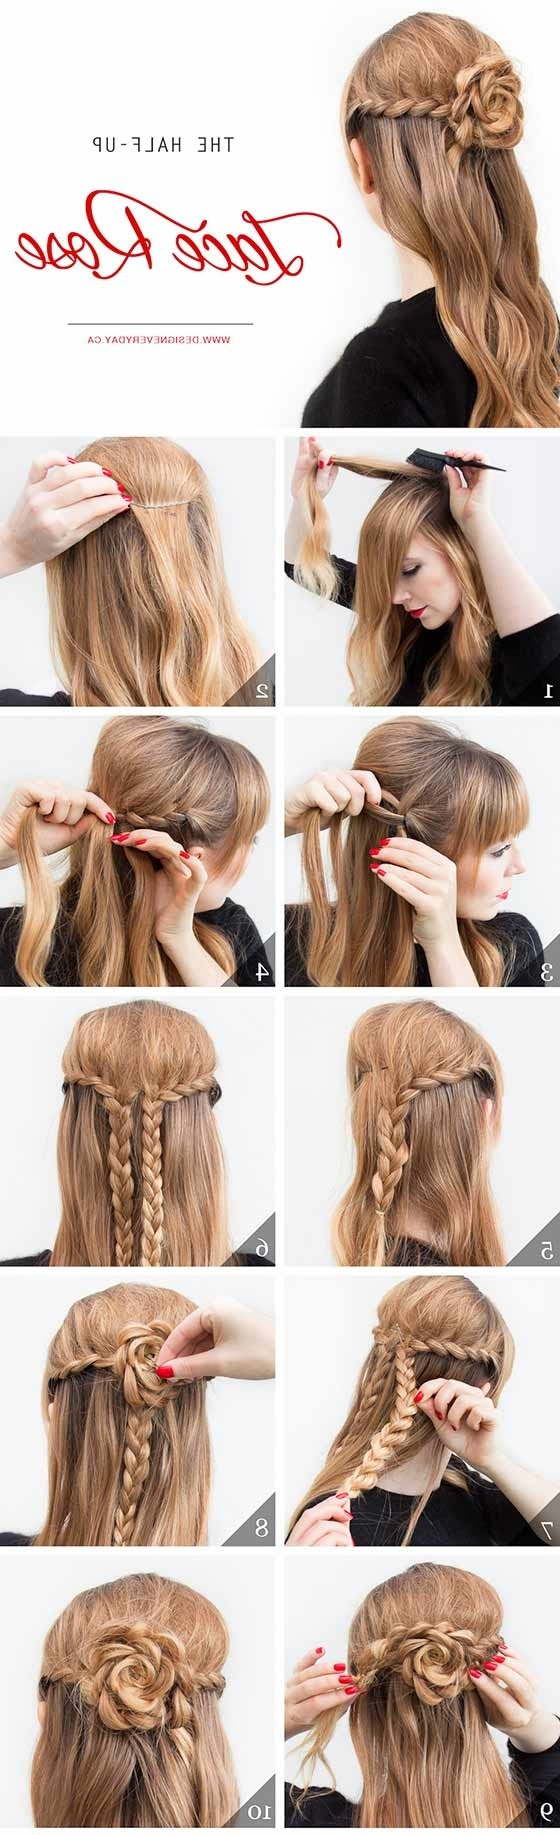 40 Braided Hairstyles For Long Hair Pertaining To Preferred Braid Hairstyles For Long Hair (View 9 of 15)